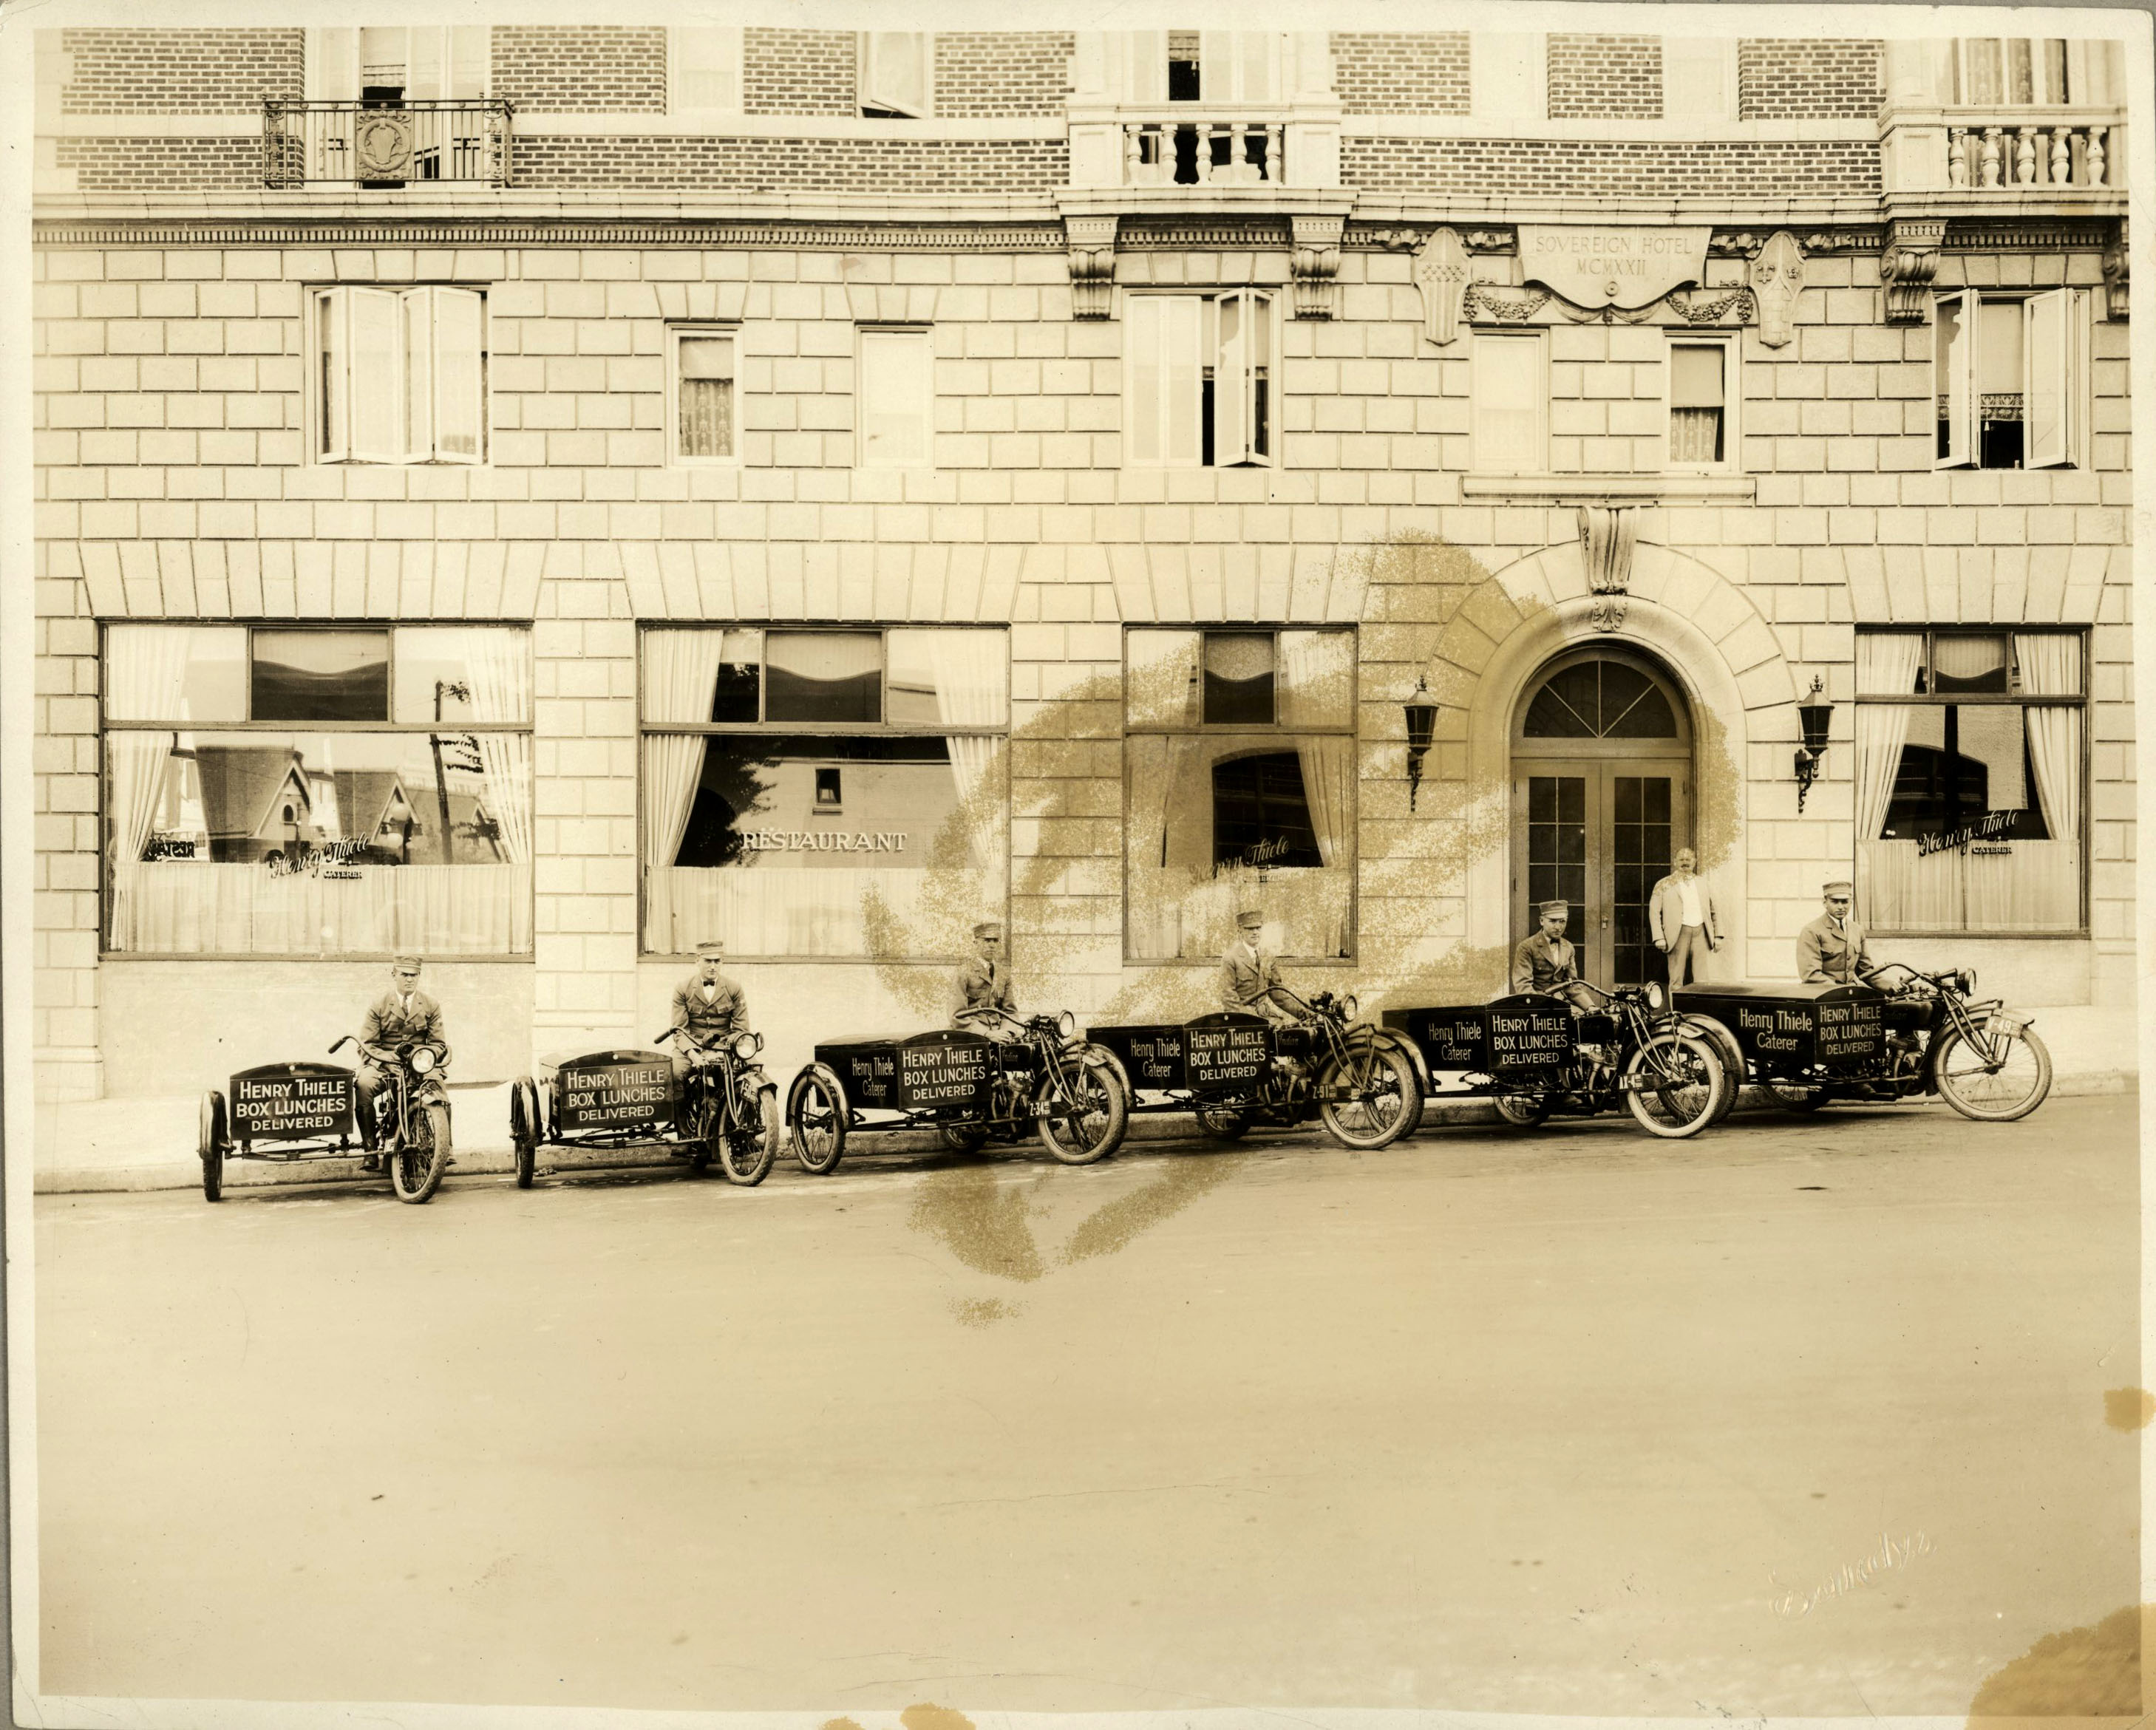 Delivery bikes lined up outside Thiele's restaurant in the Sovereign Hotel